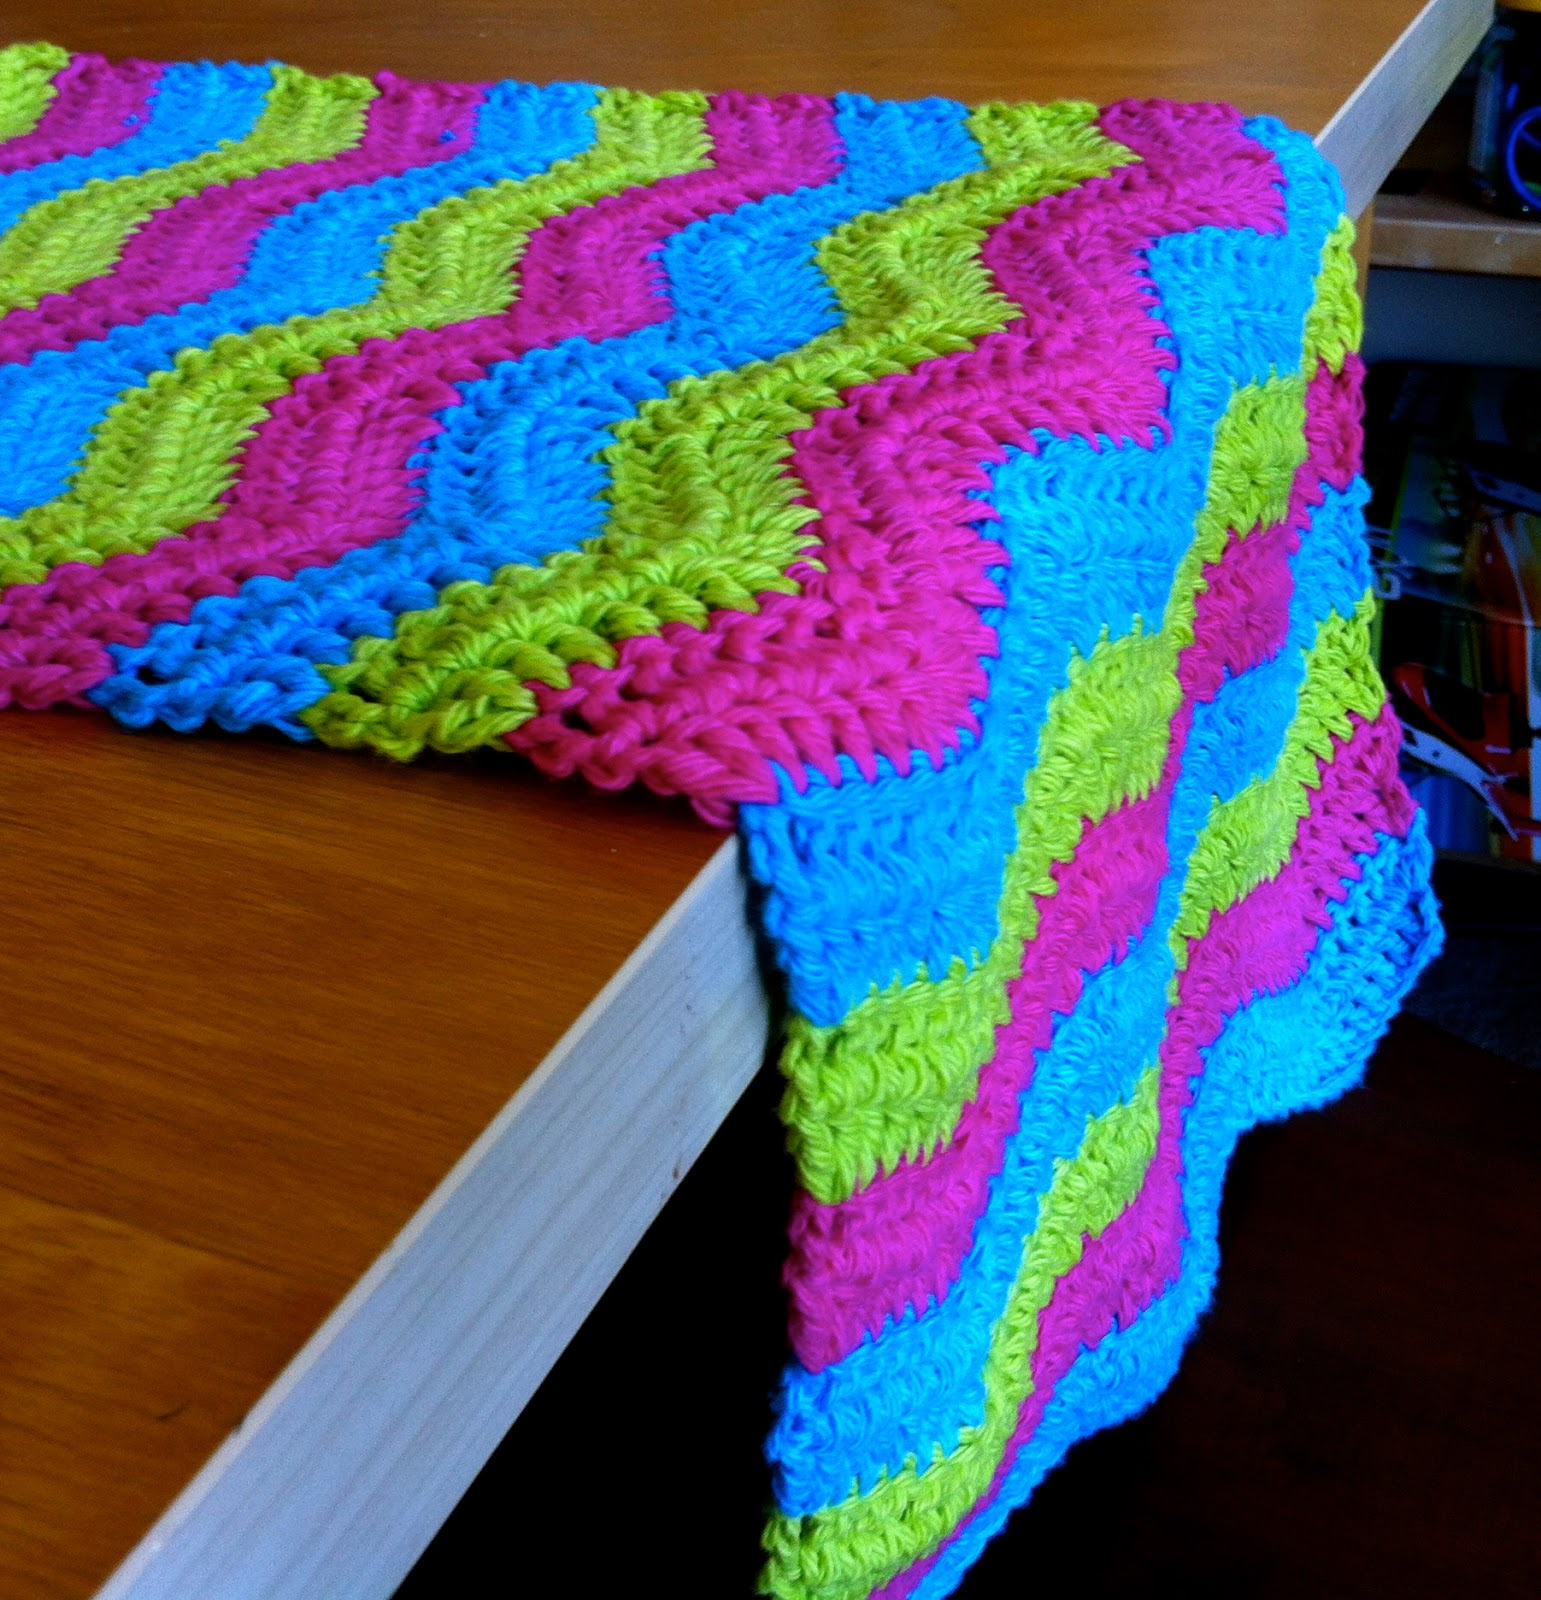 Crochet Table Runner Patterns Easy Amazing Design Ideas